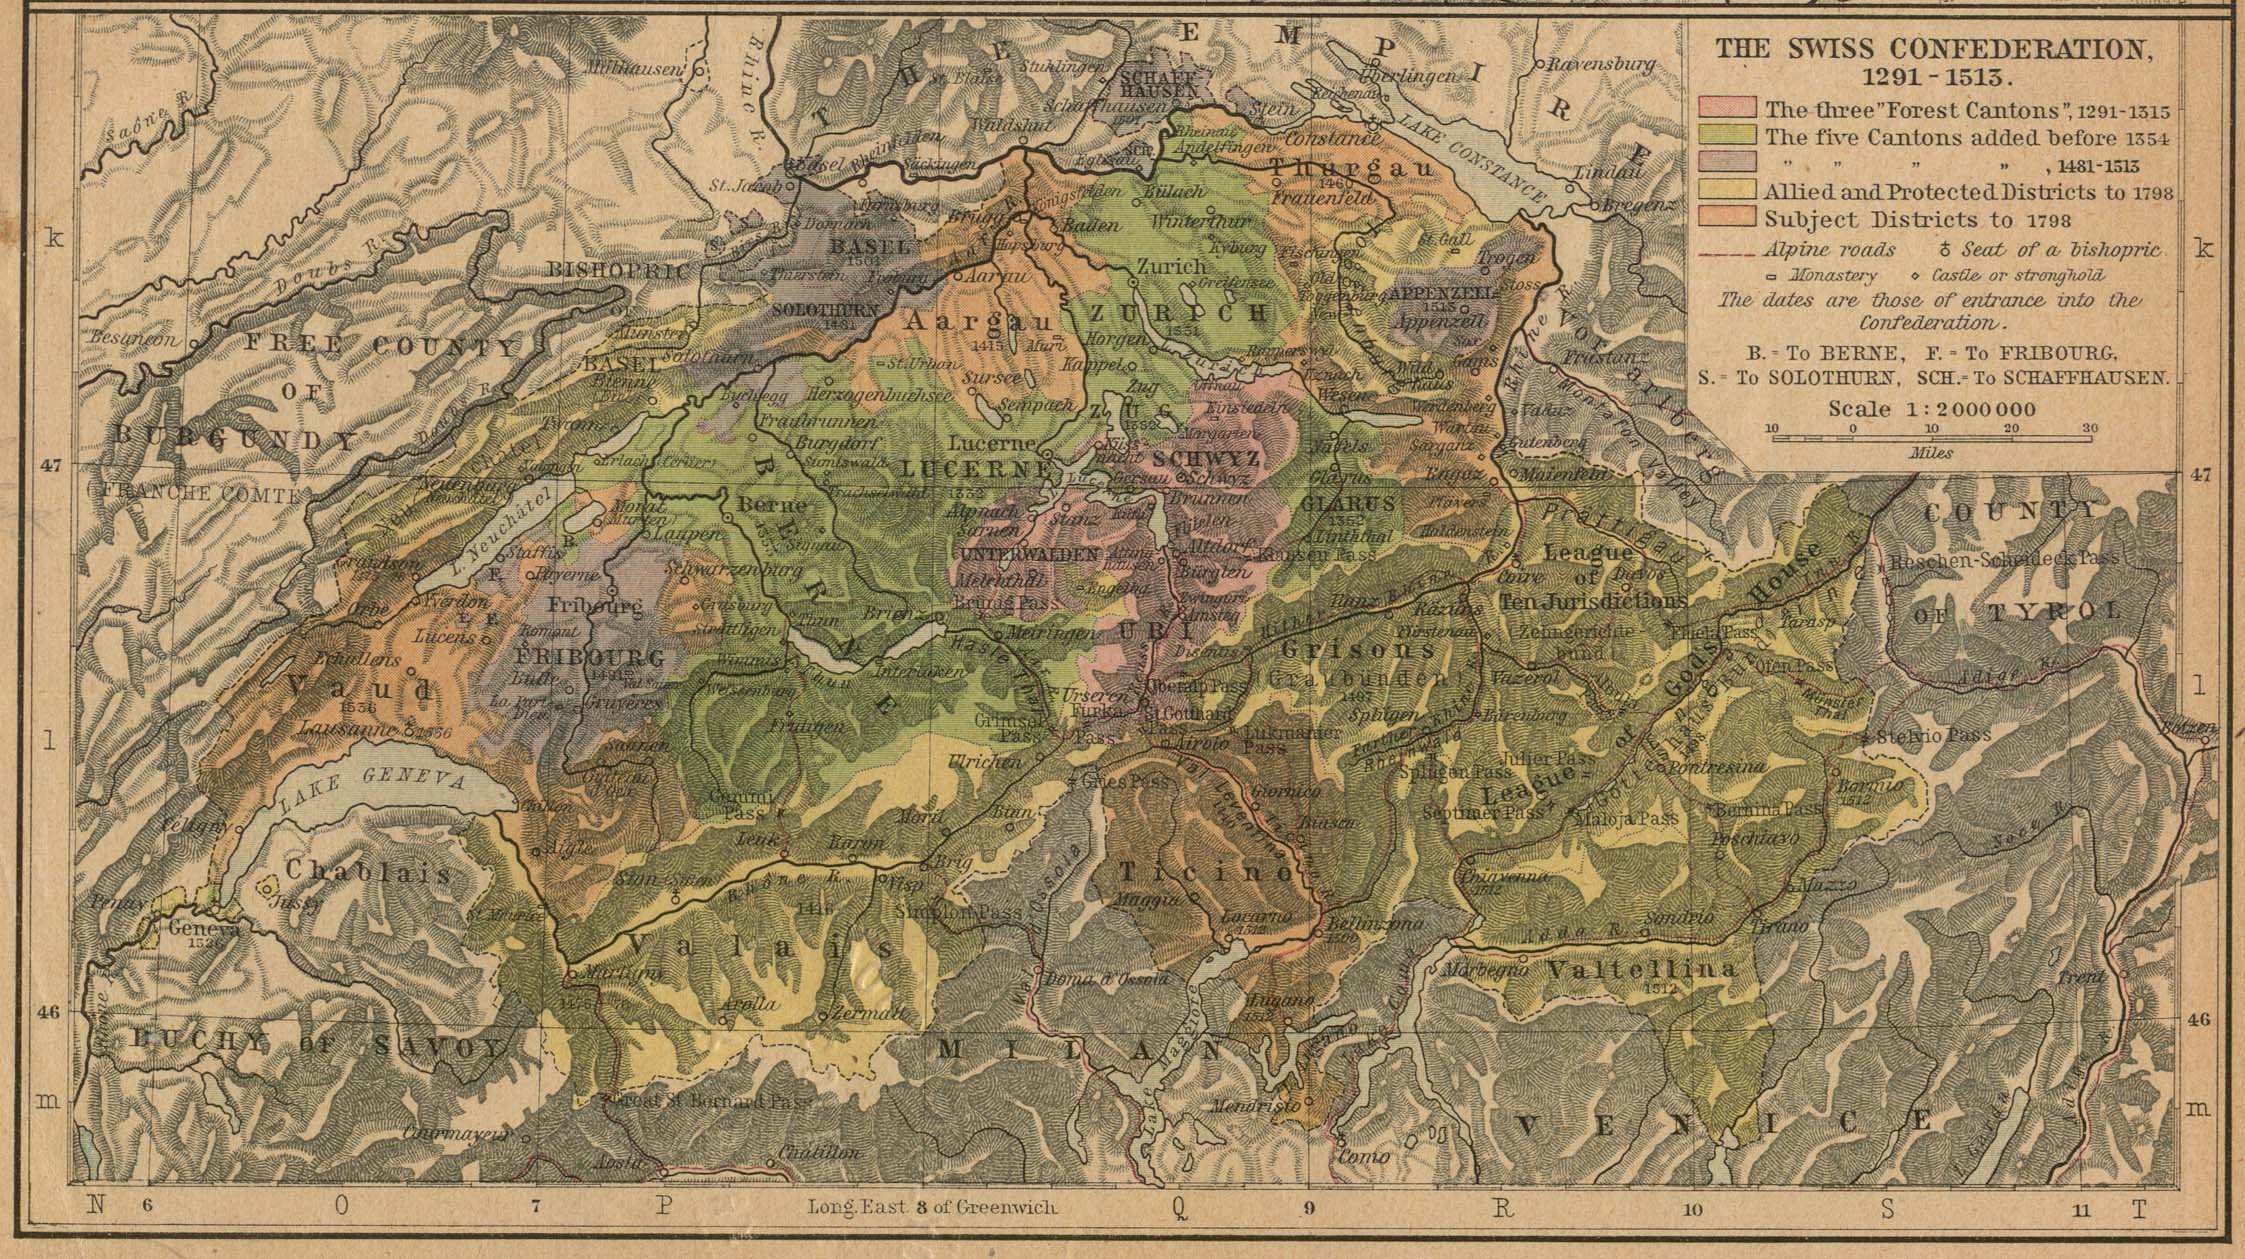 The Swiss Confederation Map 1291 - 1513